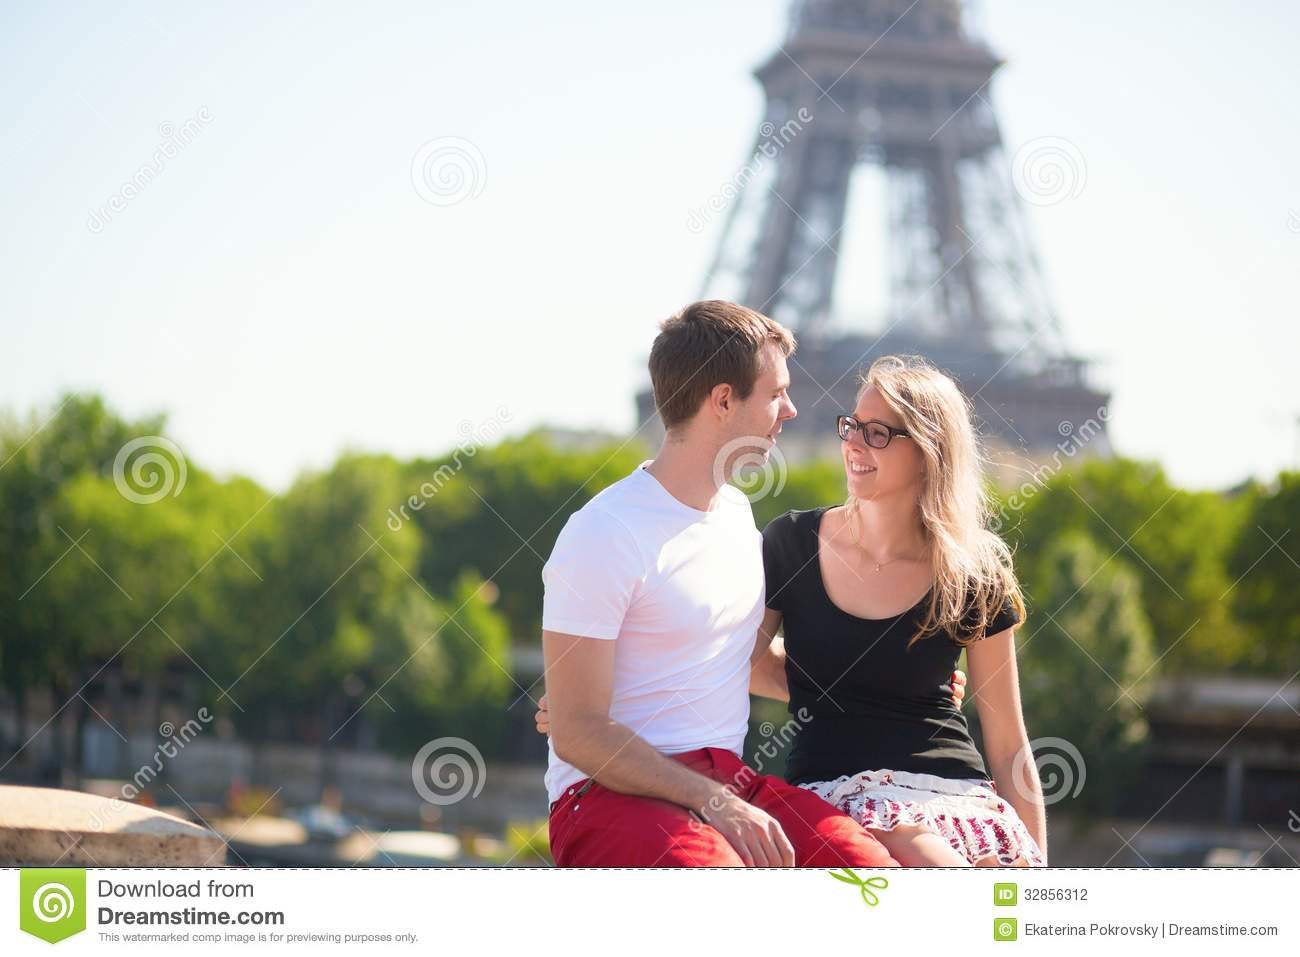 Couple in Paris, Eiffel tower in the background